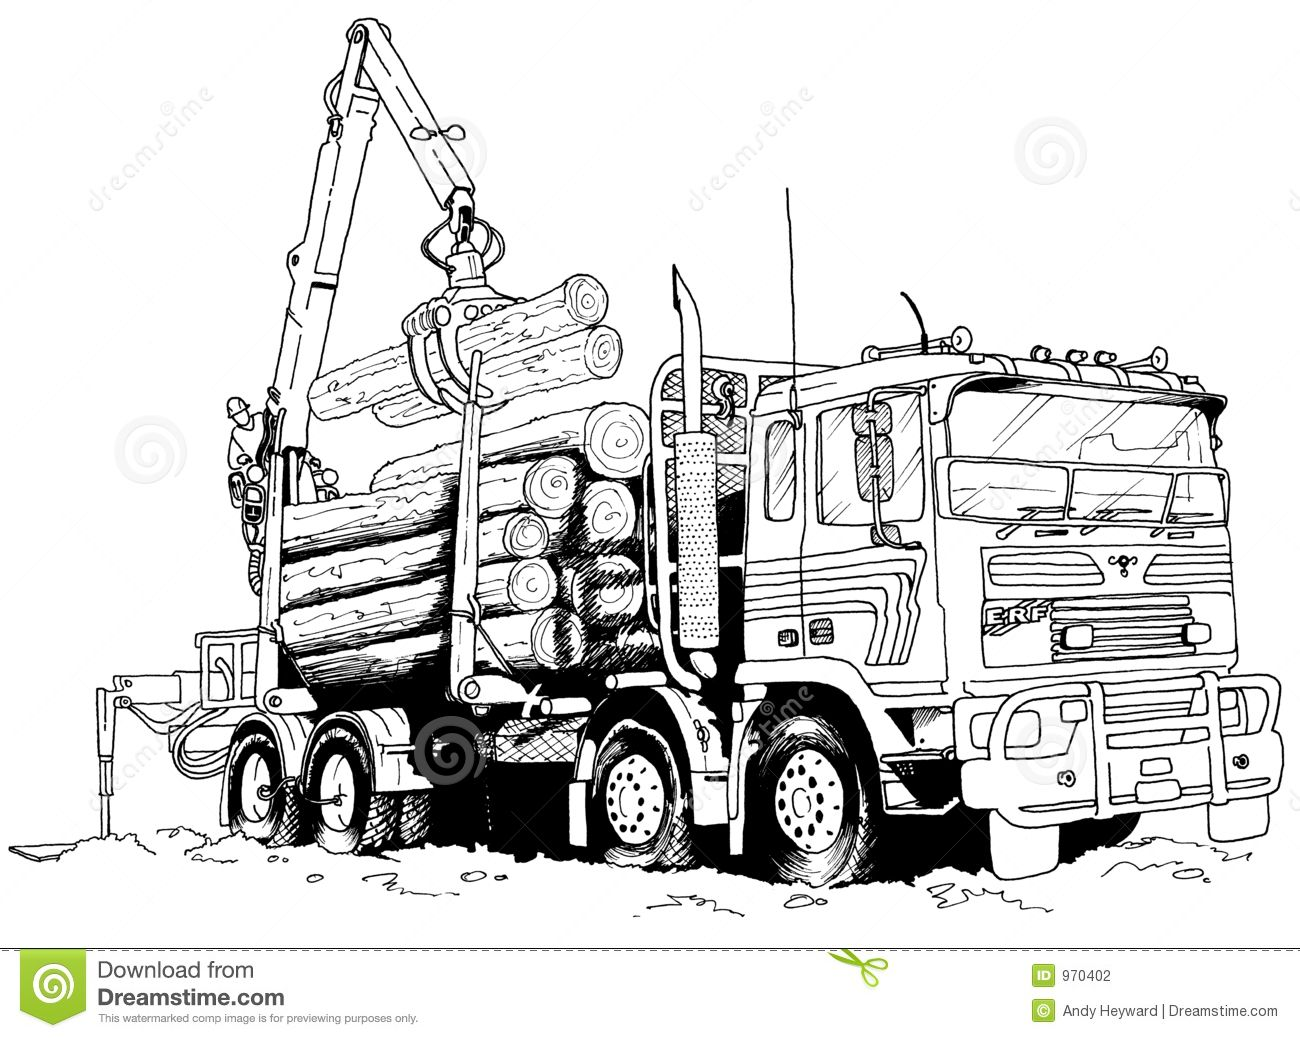 2017 Restful Drawings Logging Truck Truck Art Stock Illustration Trucks